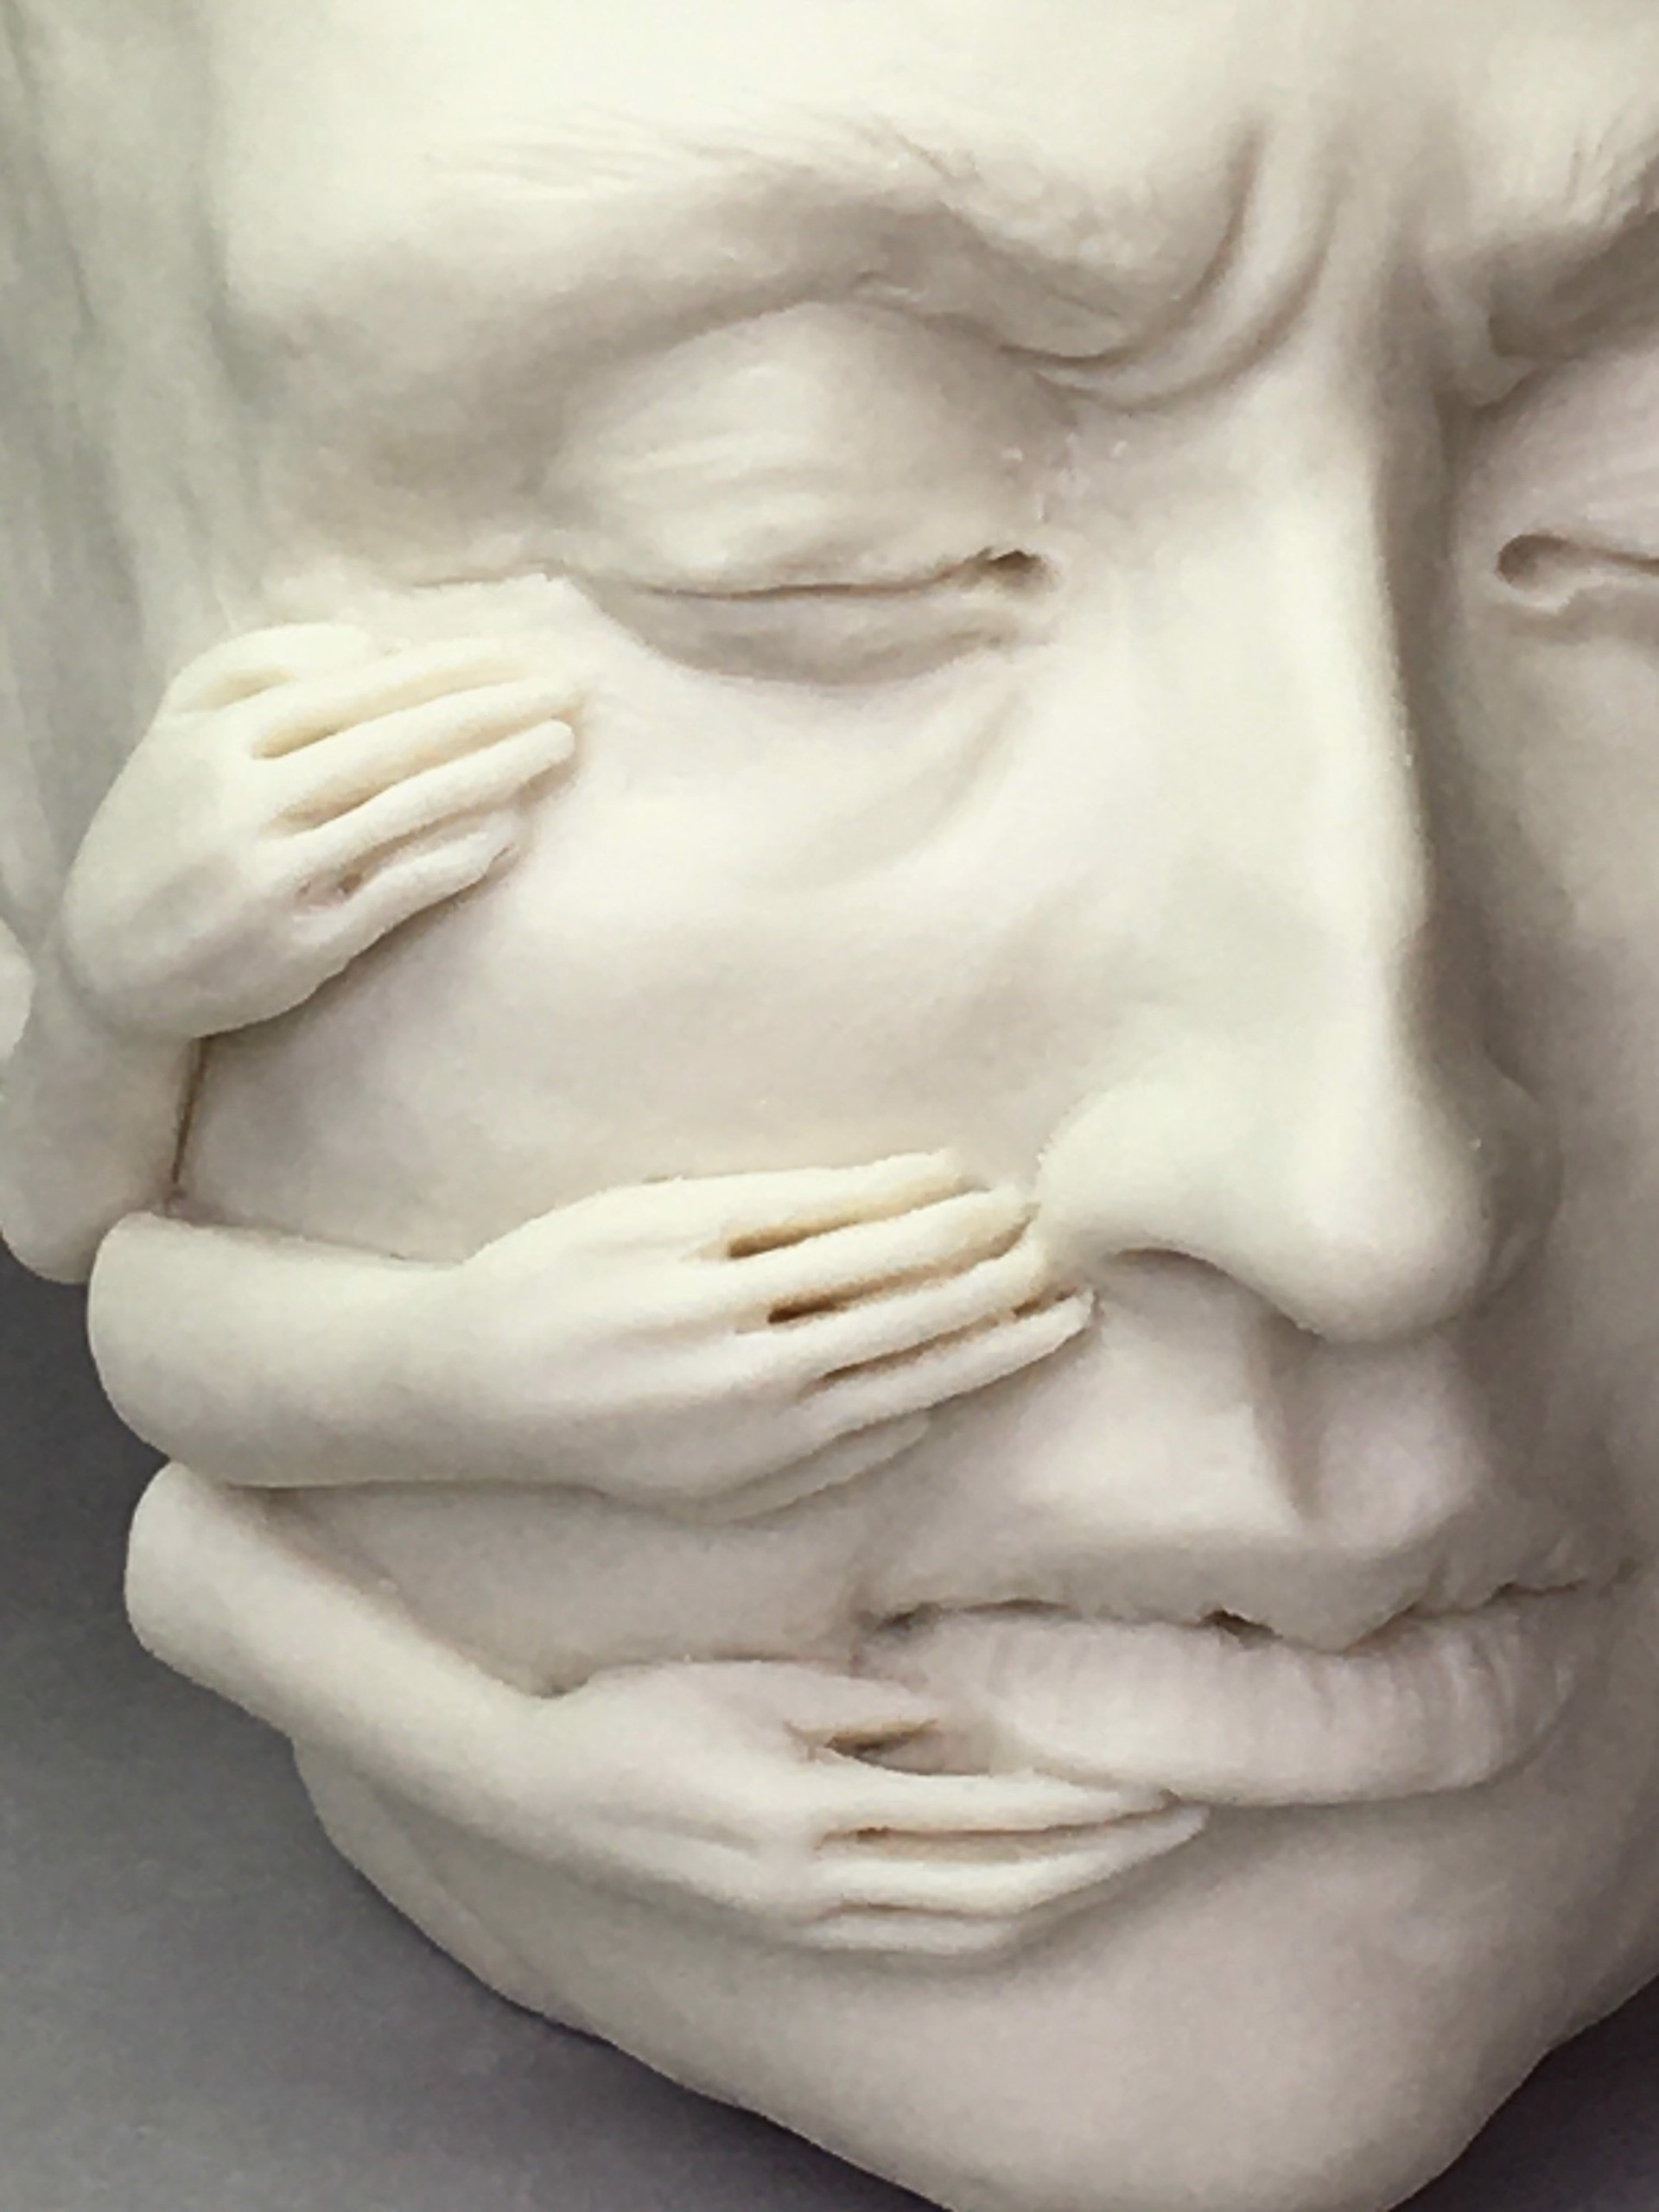 """""""#DontDoThat II"""" (3 hands right side of face) by Adrian Arleo"""